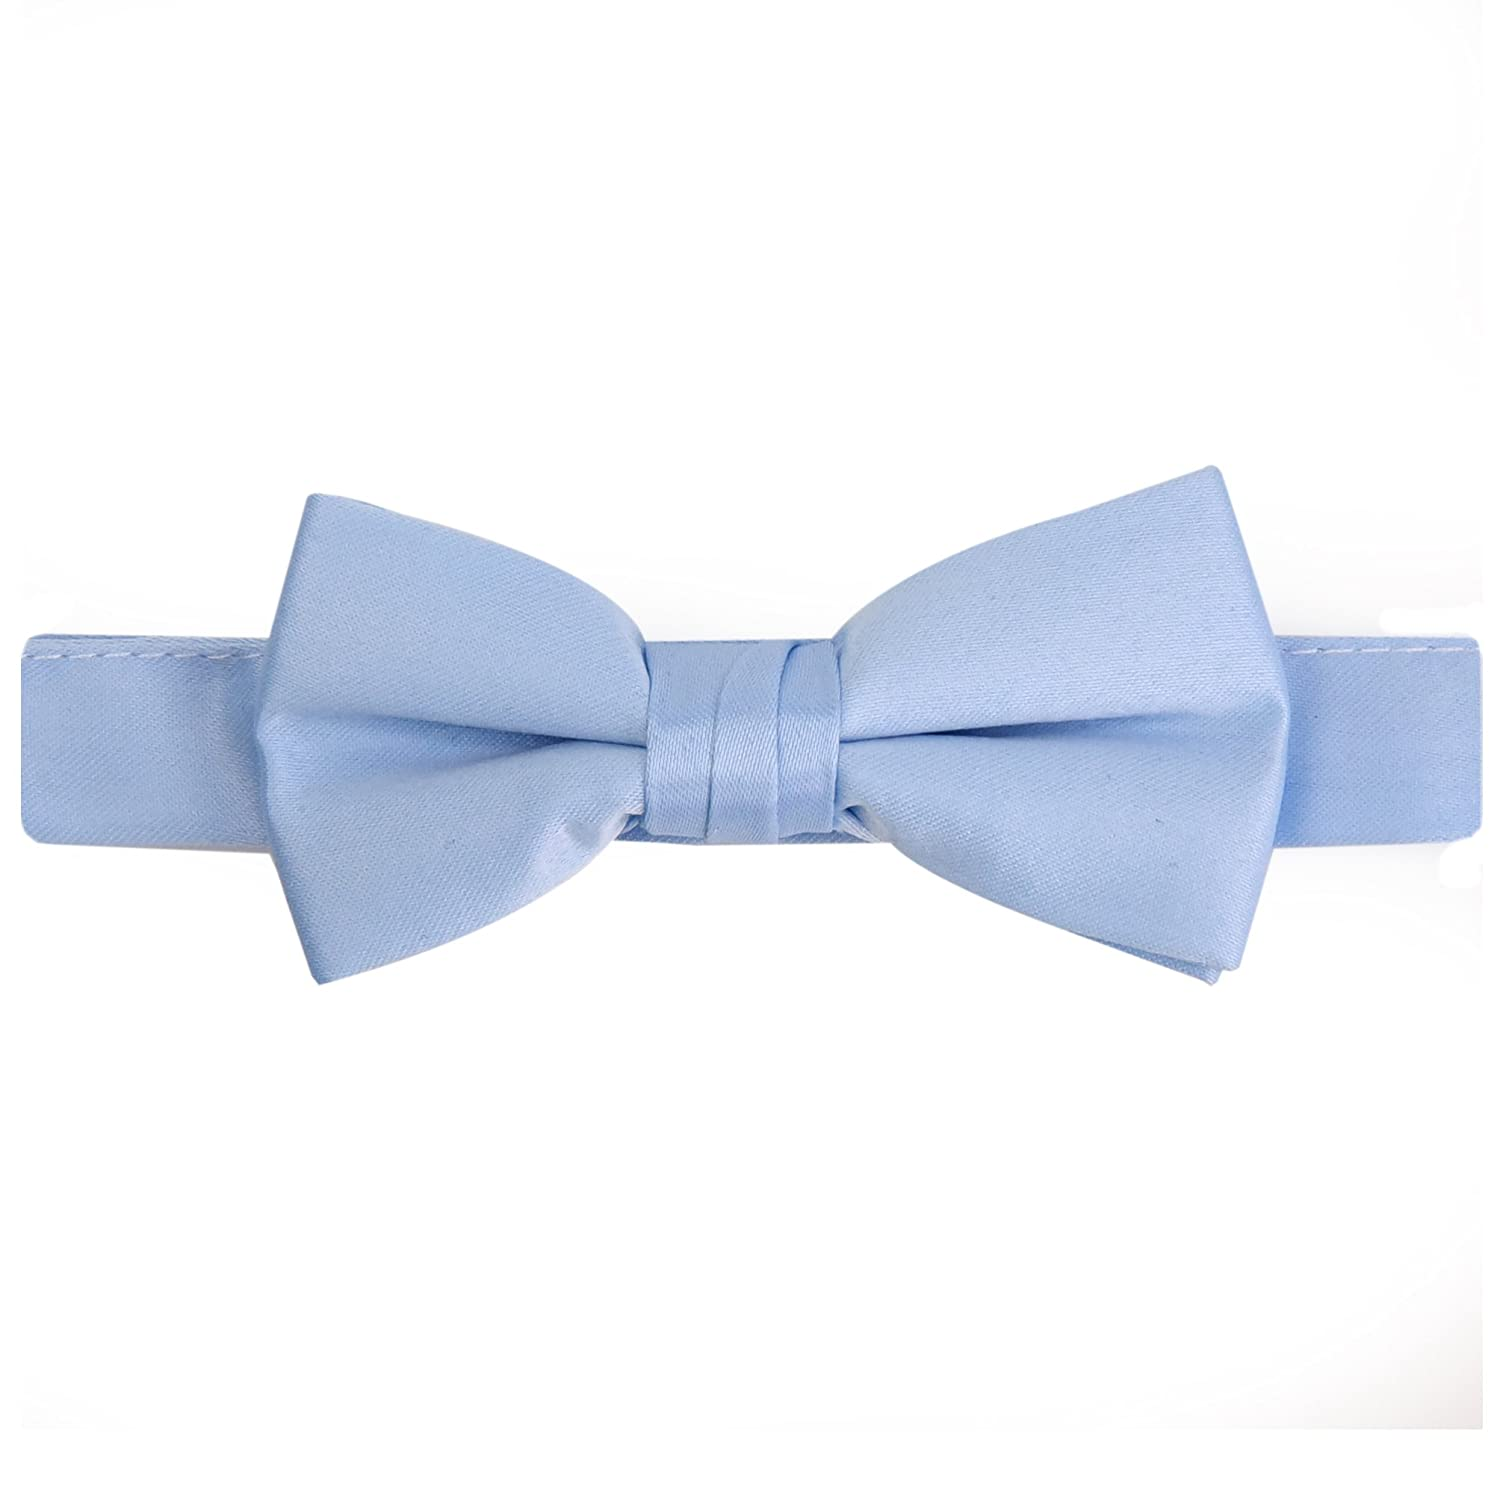 HoldEm Bow Tie For Mens Boys and Baby Satin look Solid Color Adjustable Pre-tied Made in USA